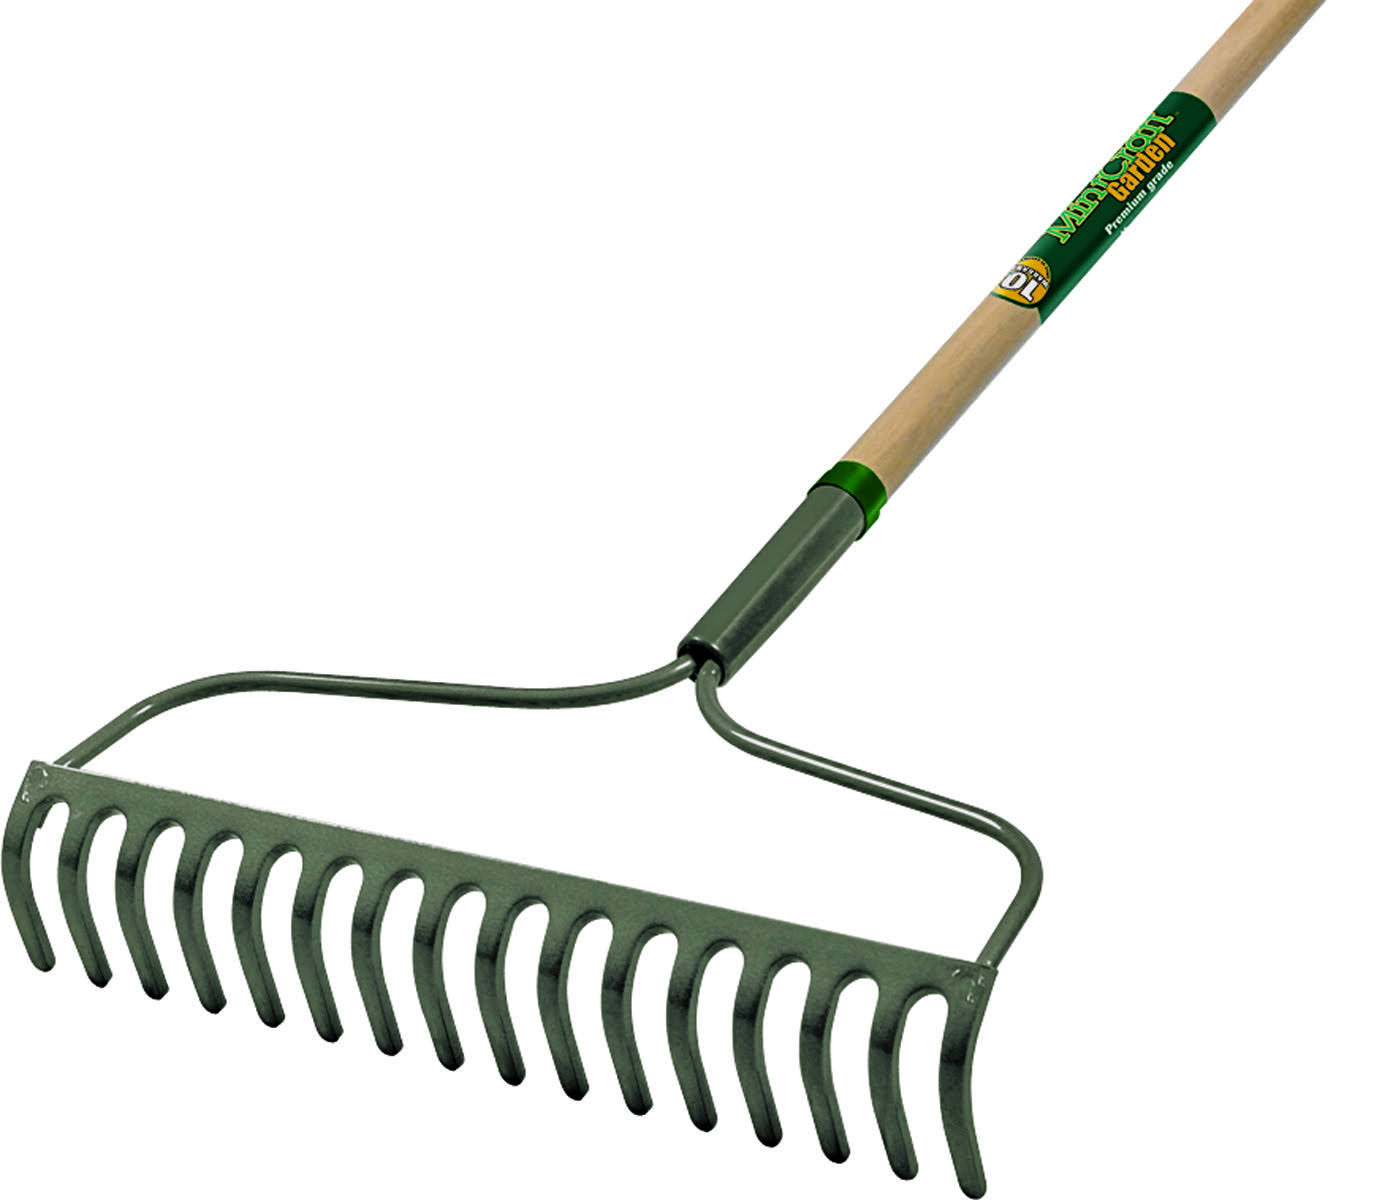 Mintcraft 33271 16-Tine Bow Rake with Wooden Handle